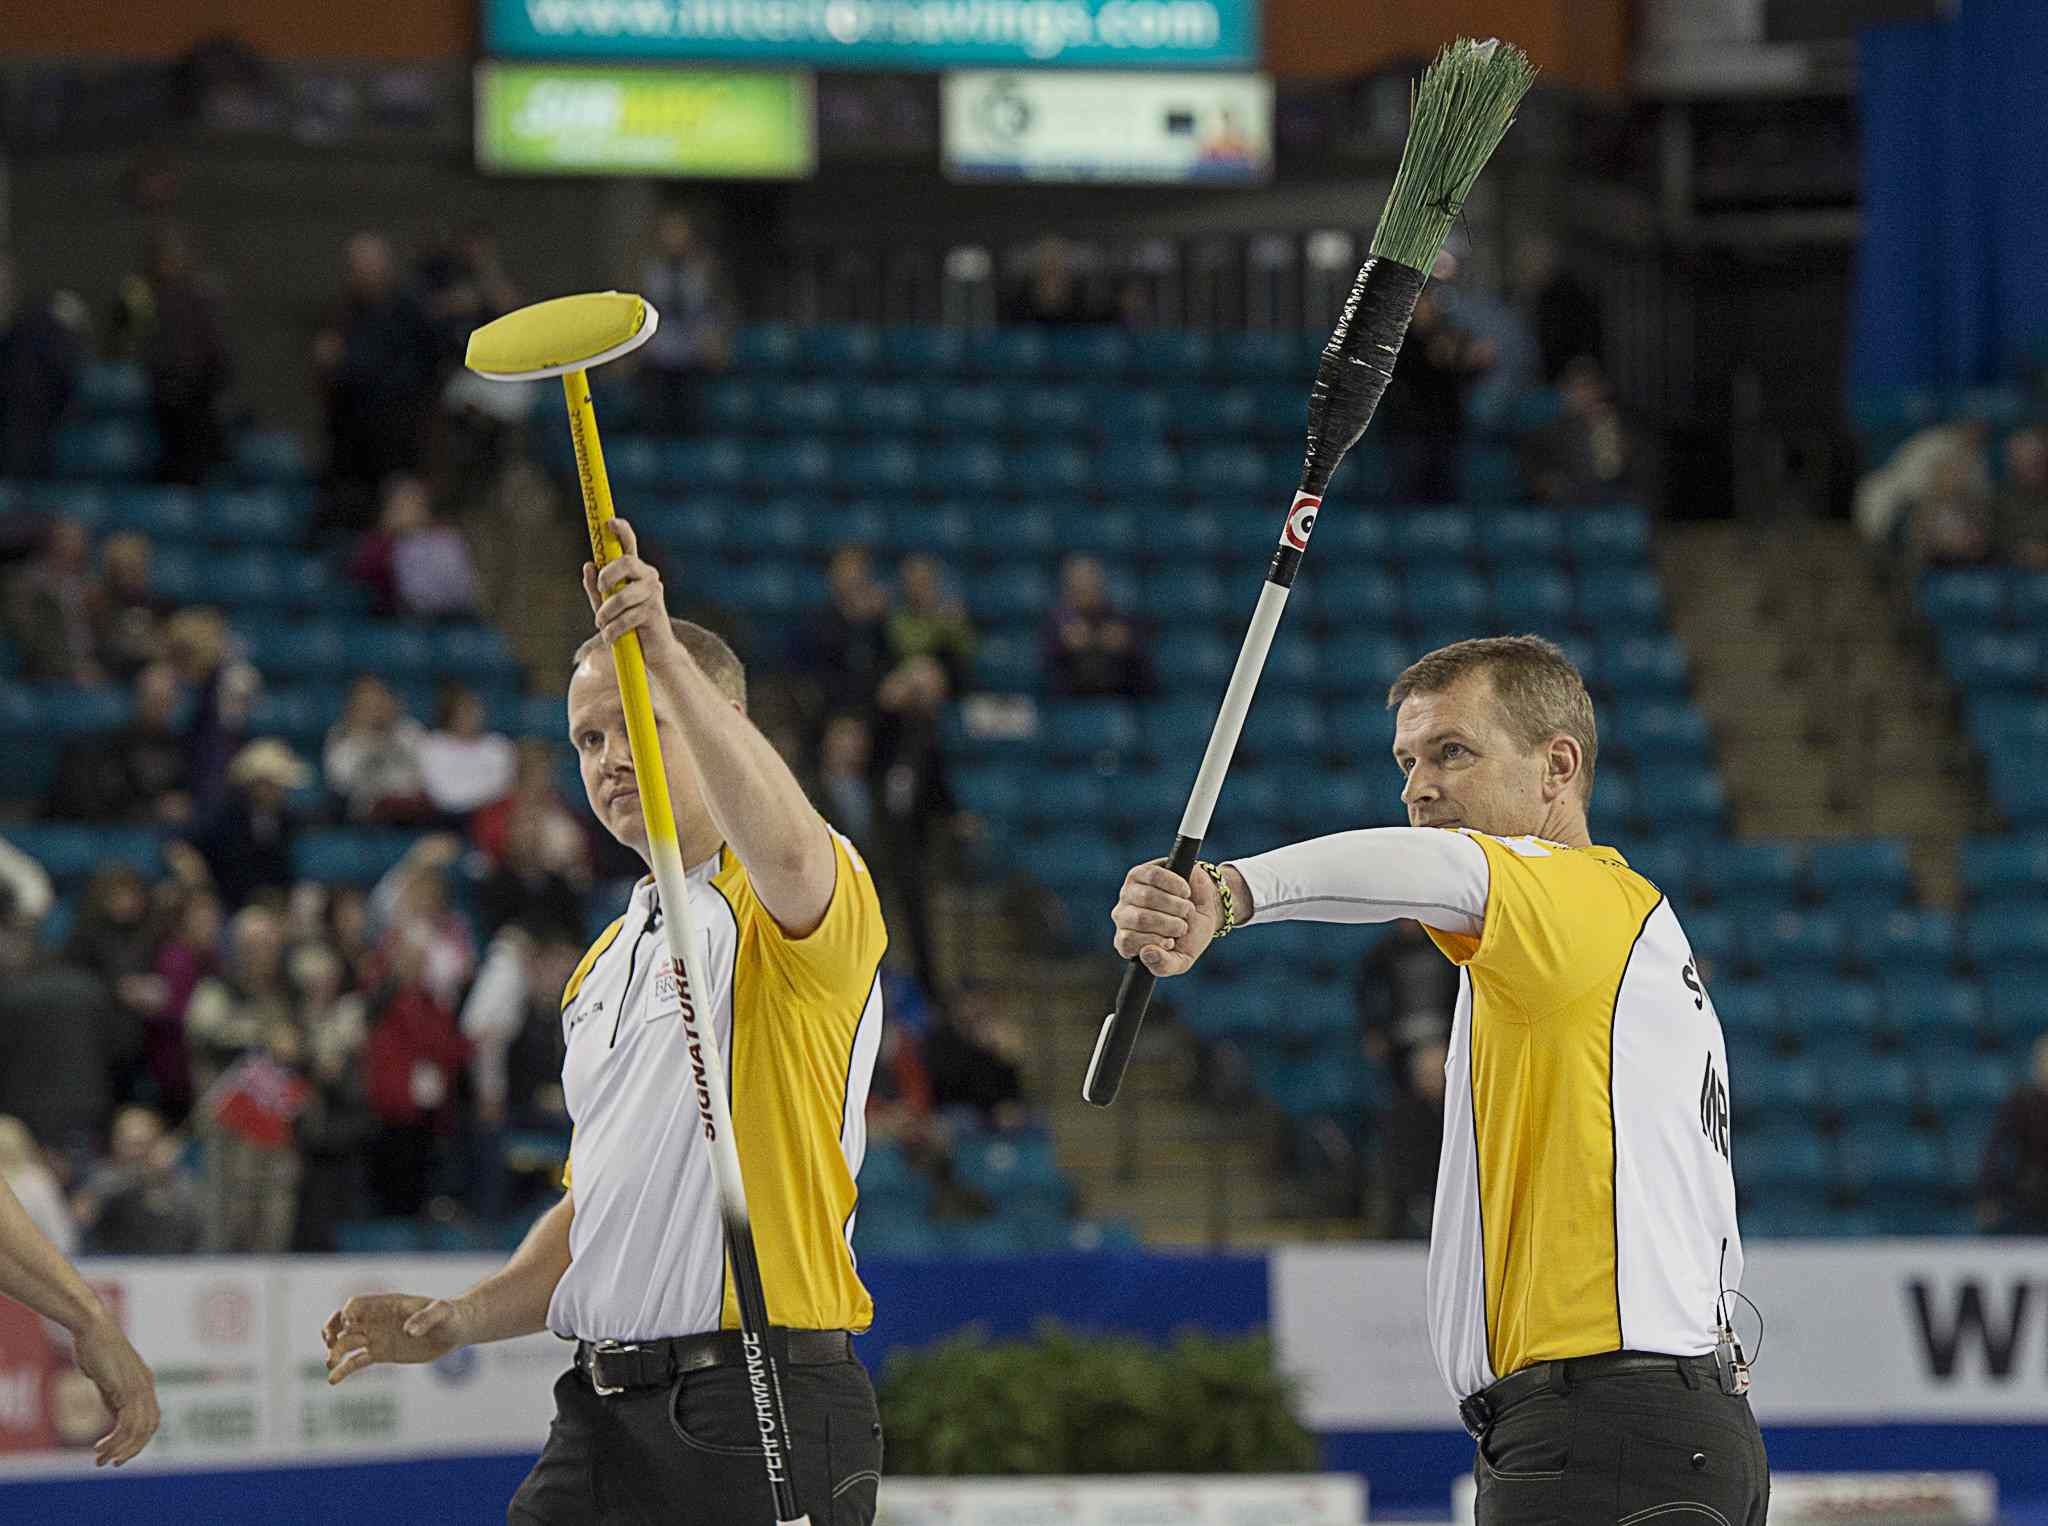 Jeff Stoughton (right) and lead Mark Nichols wave to the crowd almost as if to say goodbye after taking bronze at the Brier March 9.